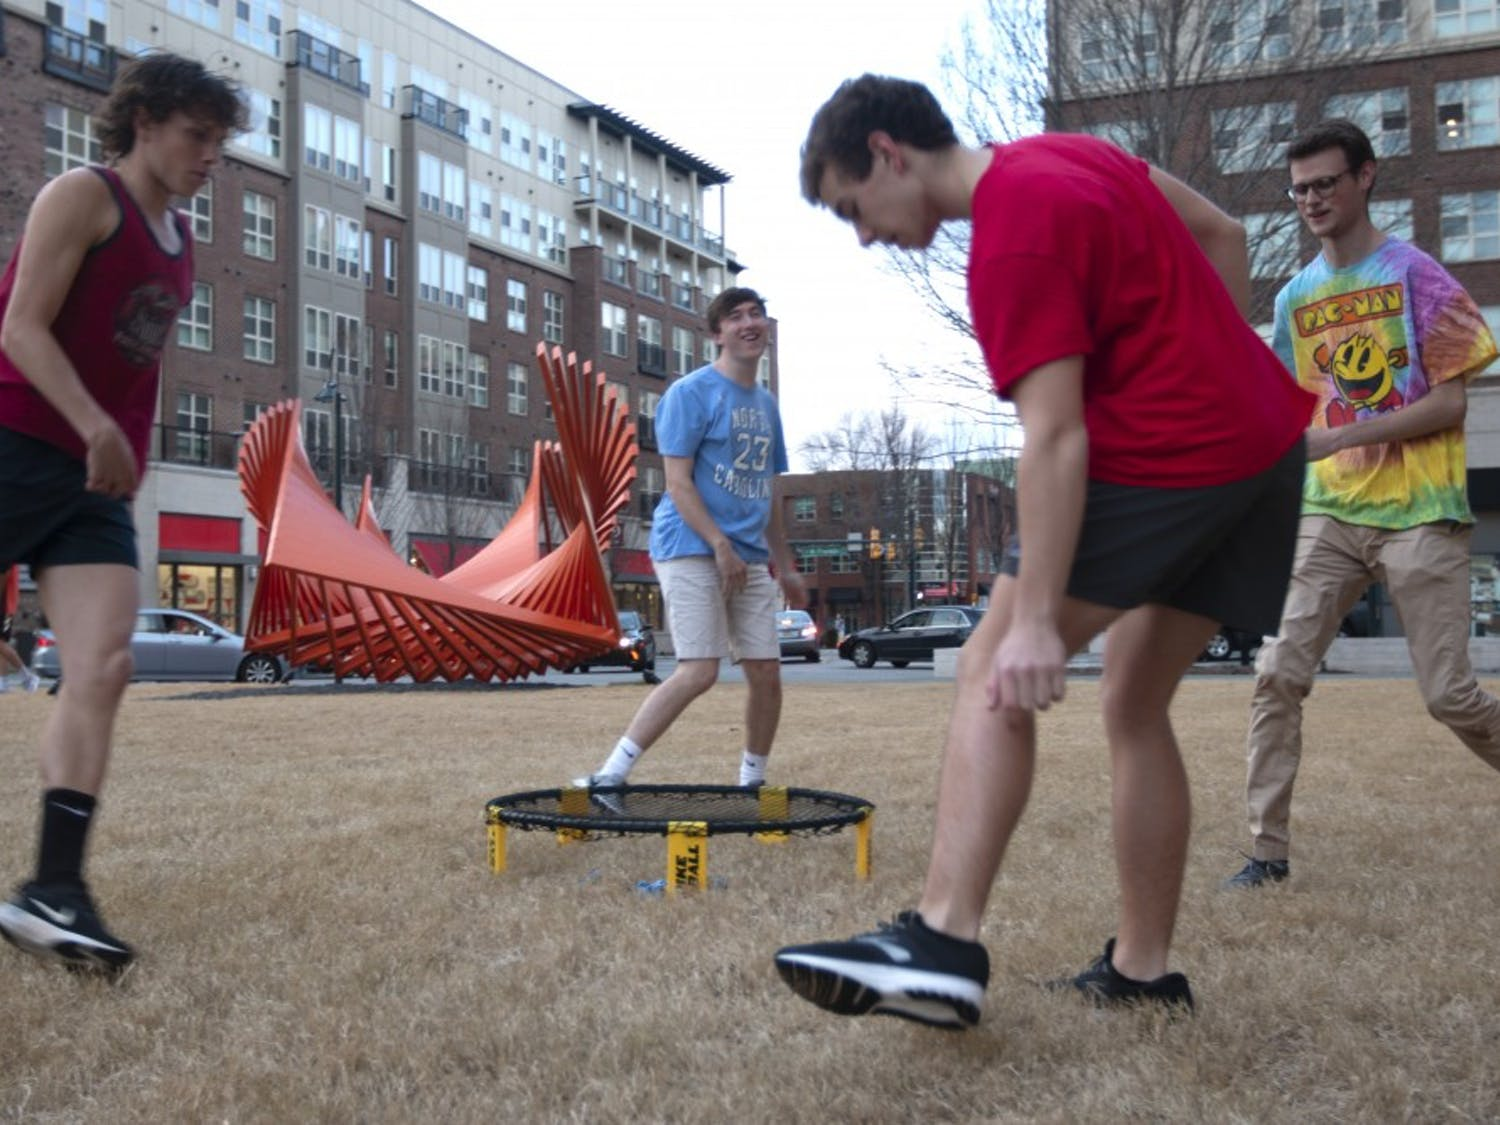 """(From left) First-years Russell Engle, Max Sherrill, Nick Belk and Bennett Stillerman play Spikeball in front of a sculpture outside of Granville Towers on Tuesday, Feb. 5, 2019. The steel installation, titled """"Going Through"""" and designed by Robert Winkler, stands as one of several public art displays in the Town of Chapel Hill."""